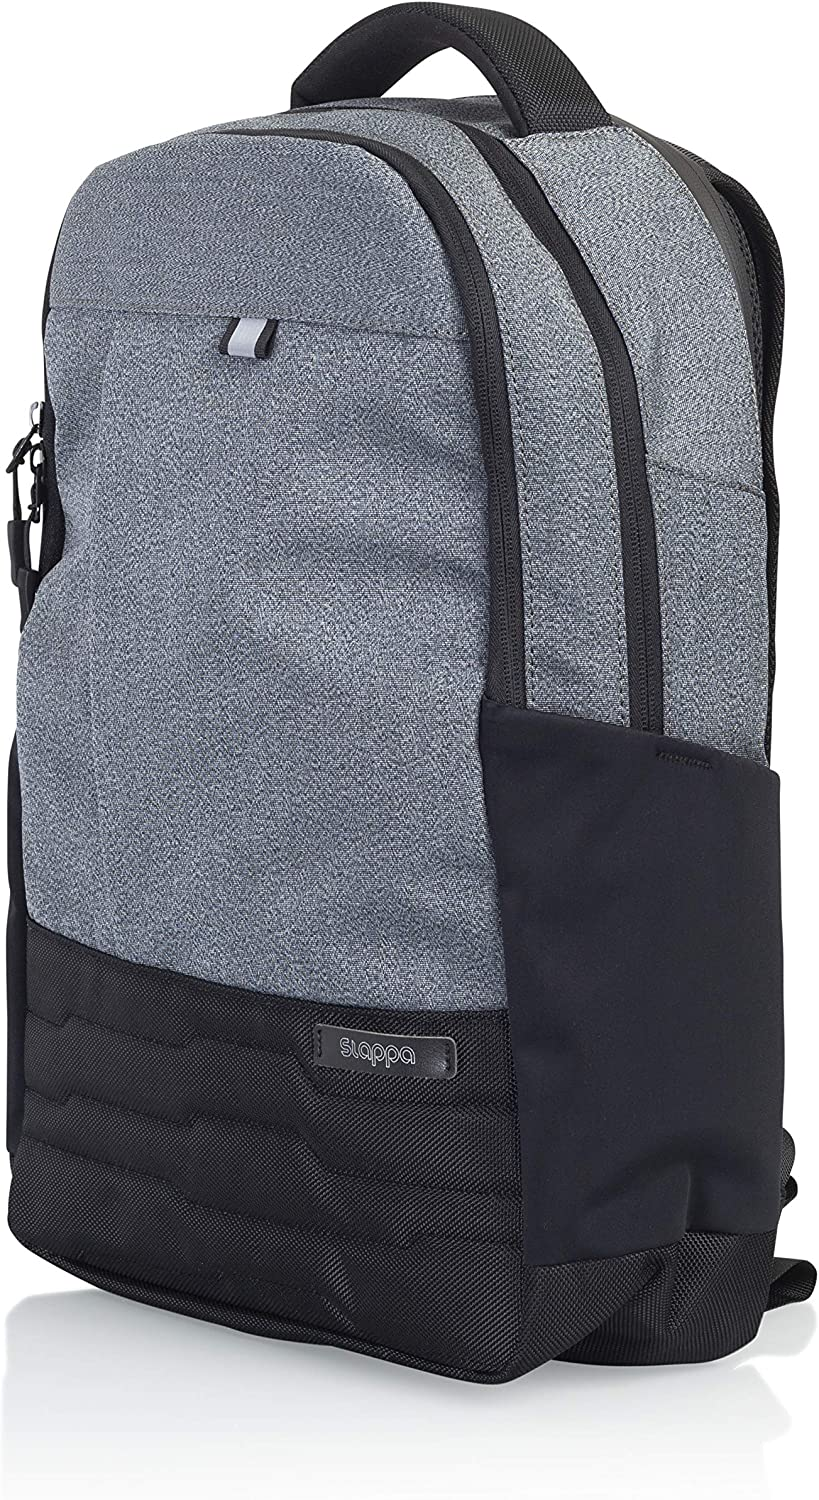 Slappa Gaming Laptop Backpack with Water Resistant Zippers; Fits up to 15